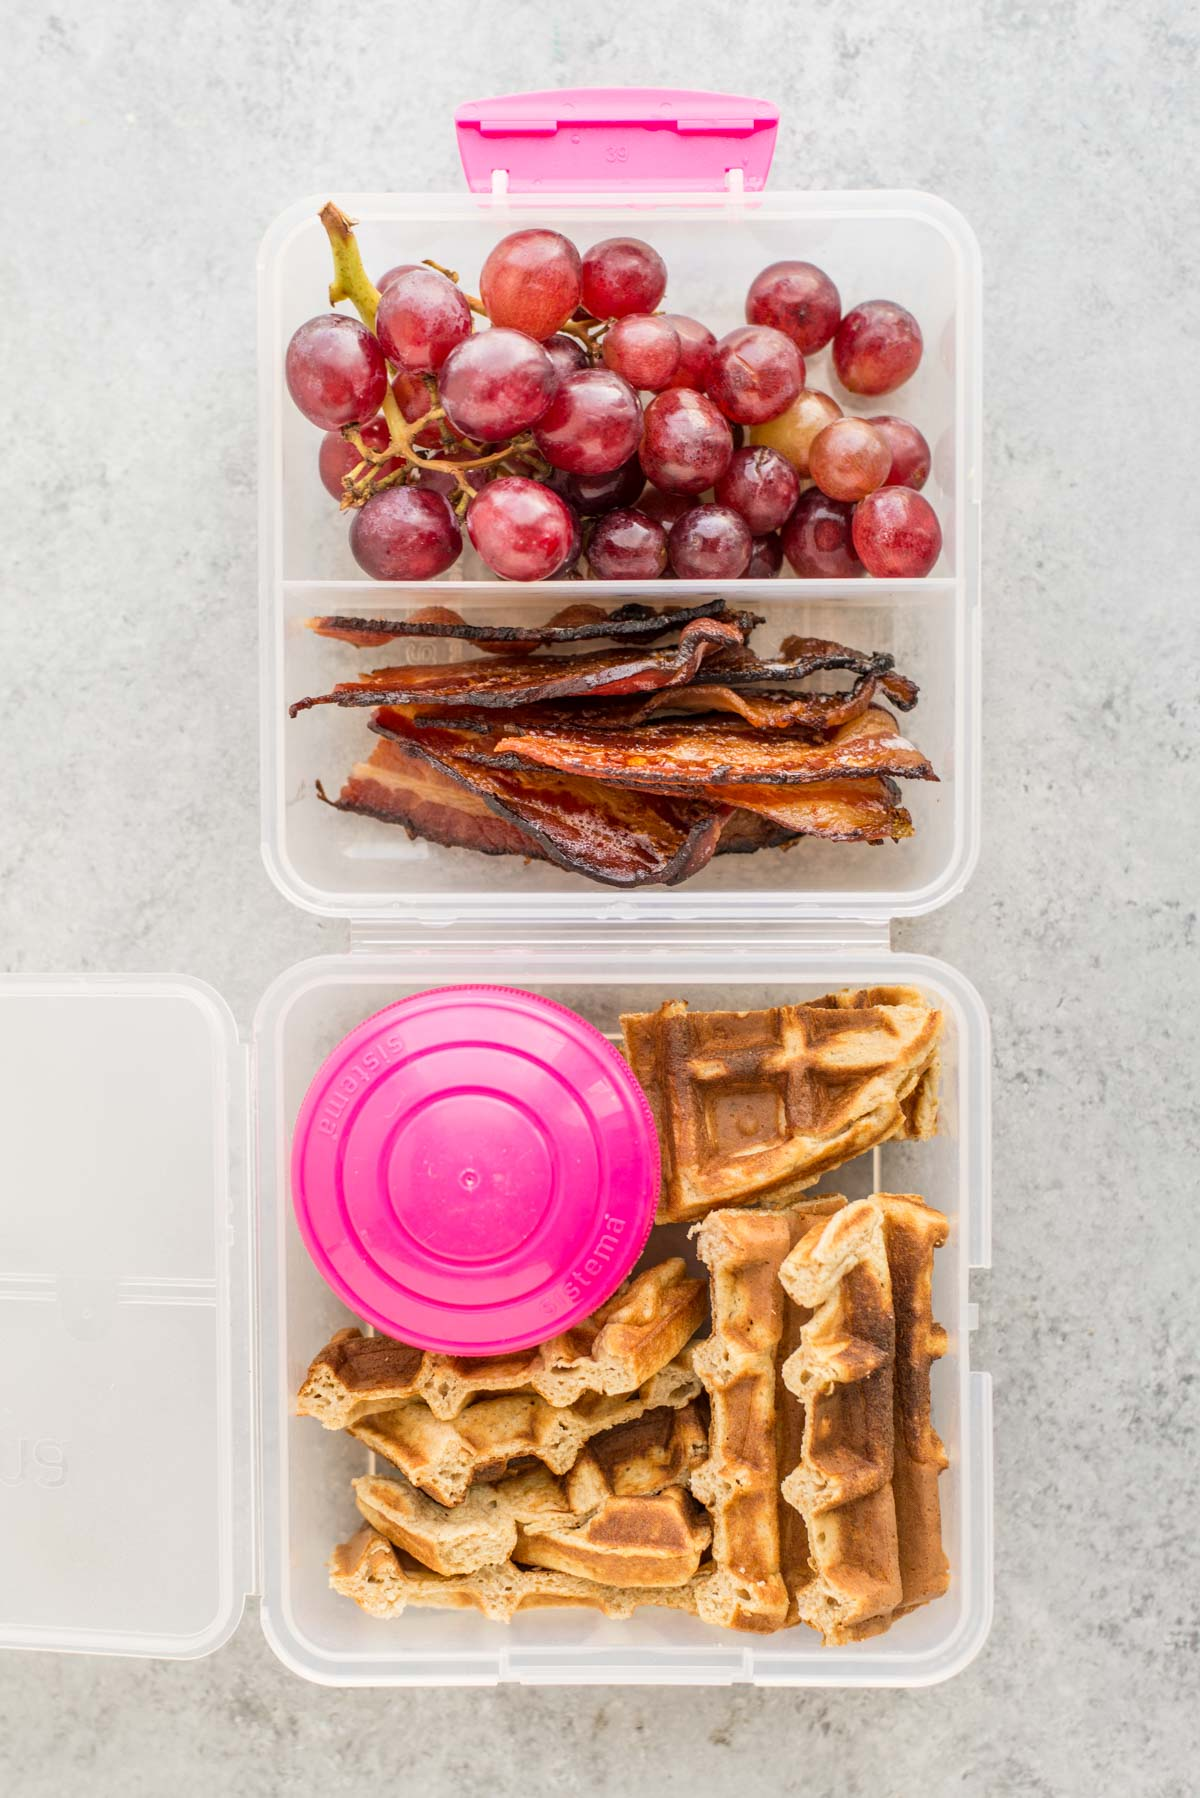 5 Simple Lunch Ideas that Will Make You Enjoy Packing Lunch